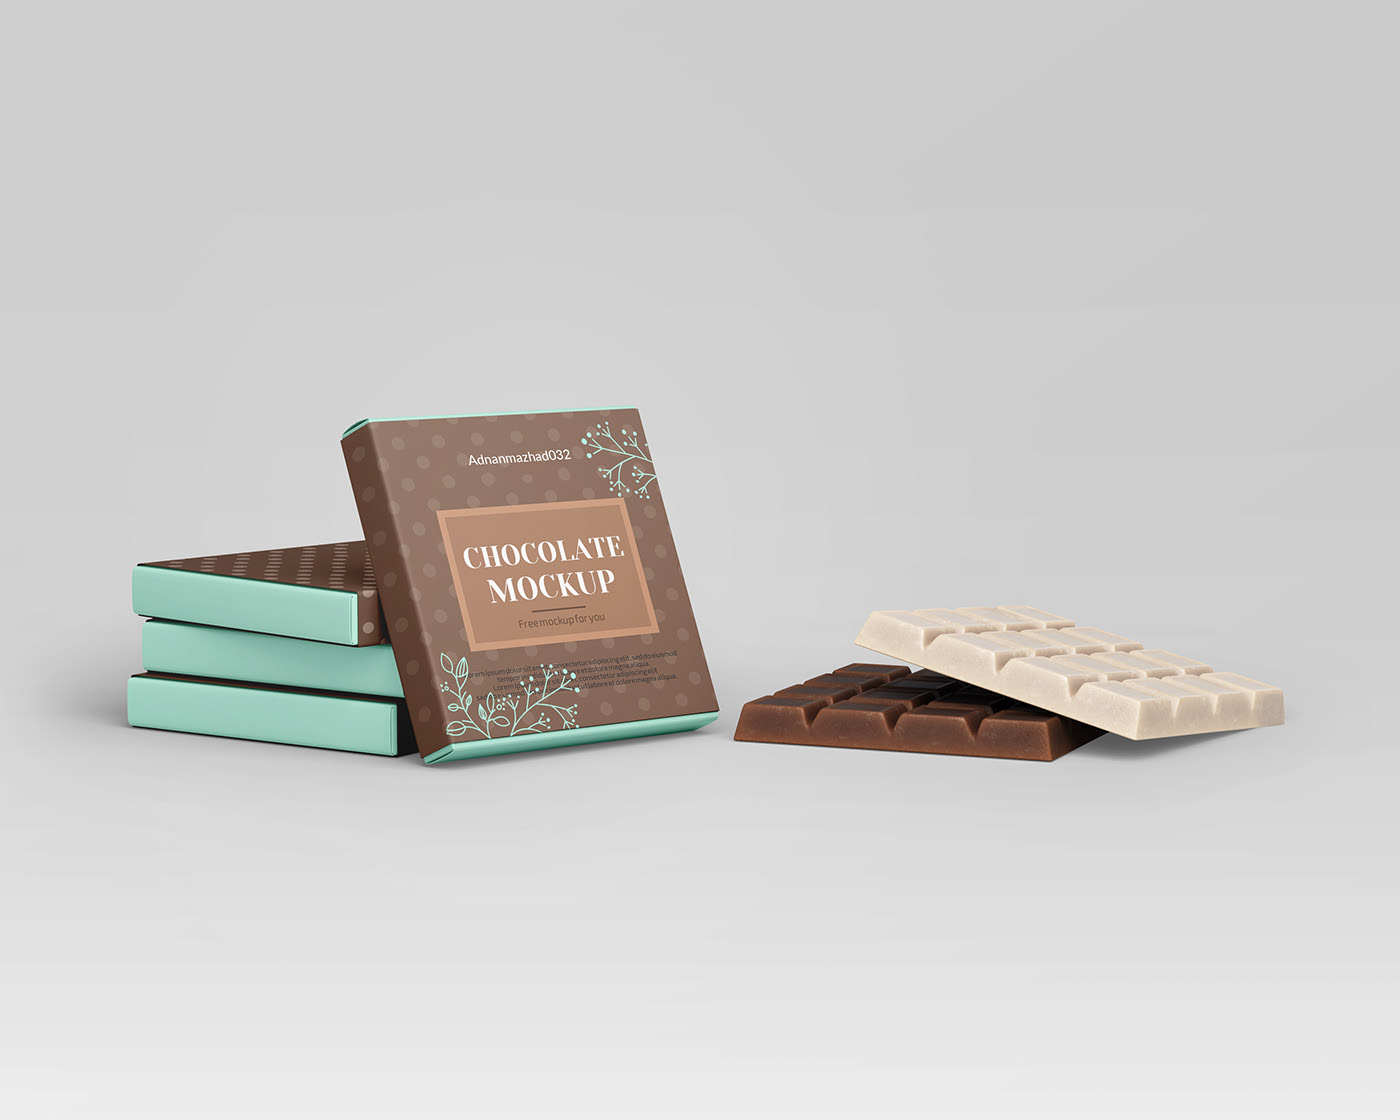 Free Bar of Chocolate Mockup PSD